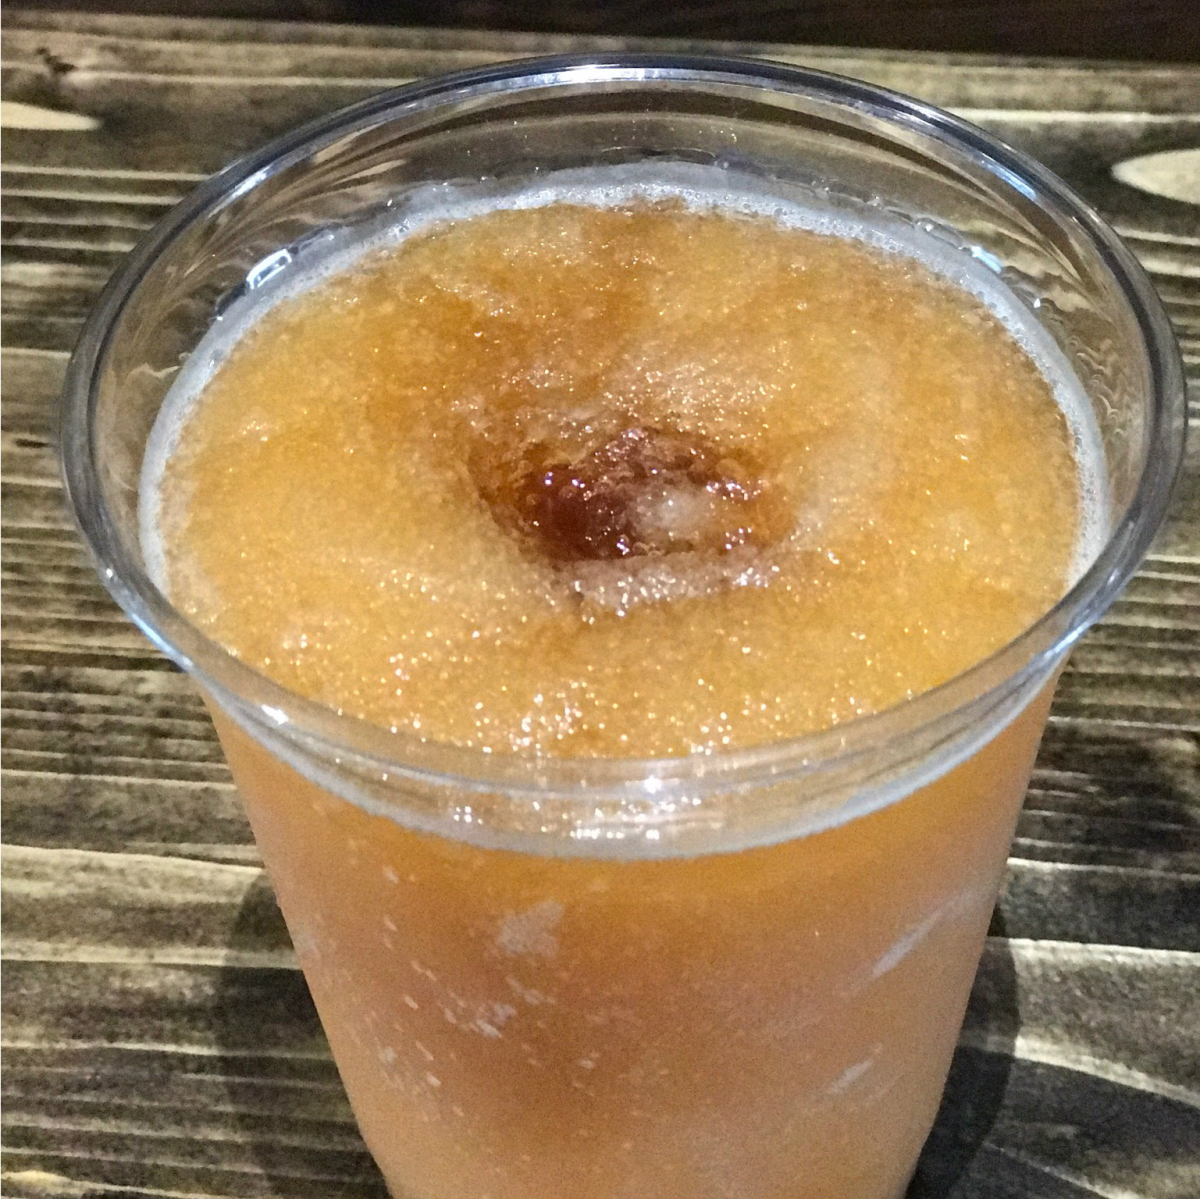 Peach Blossom daiquiri at Cajun Tailgators